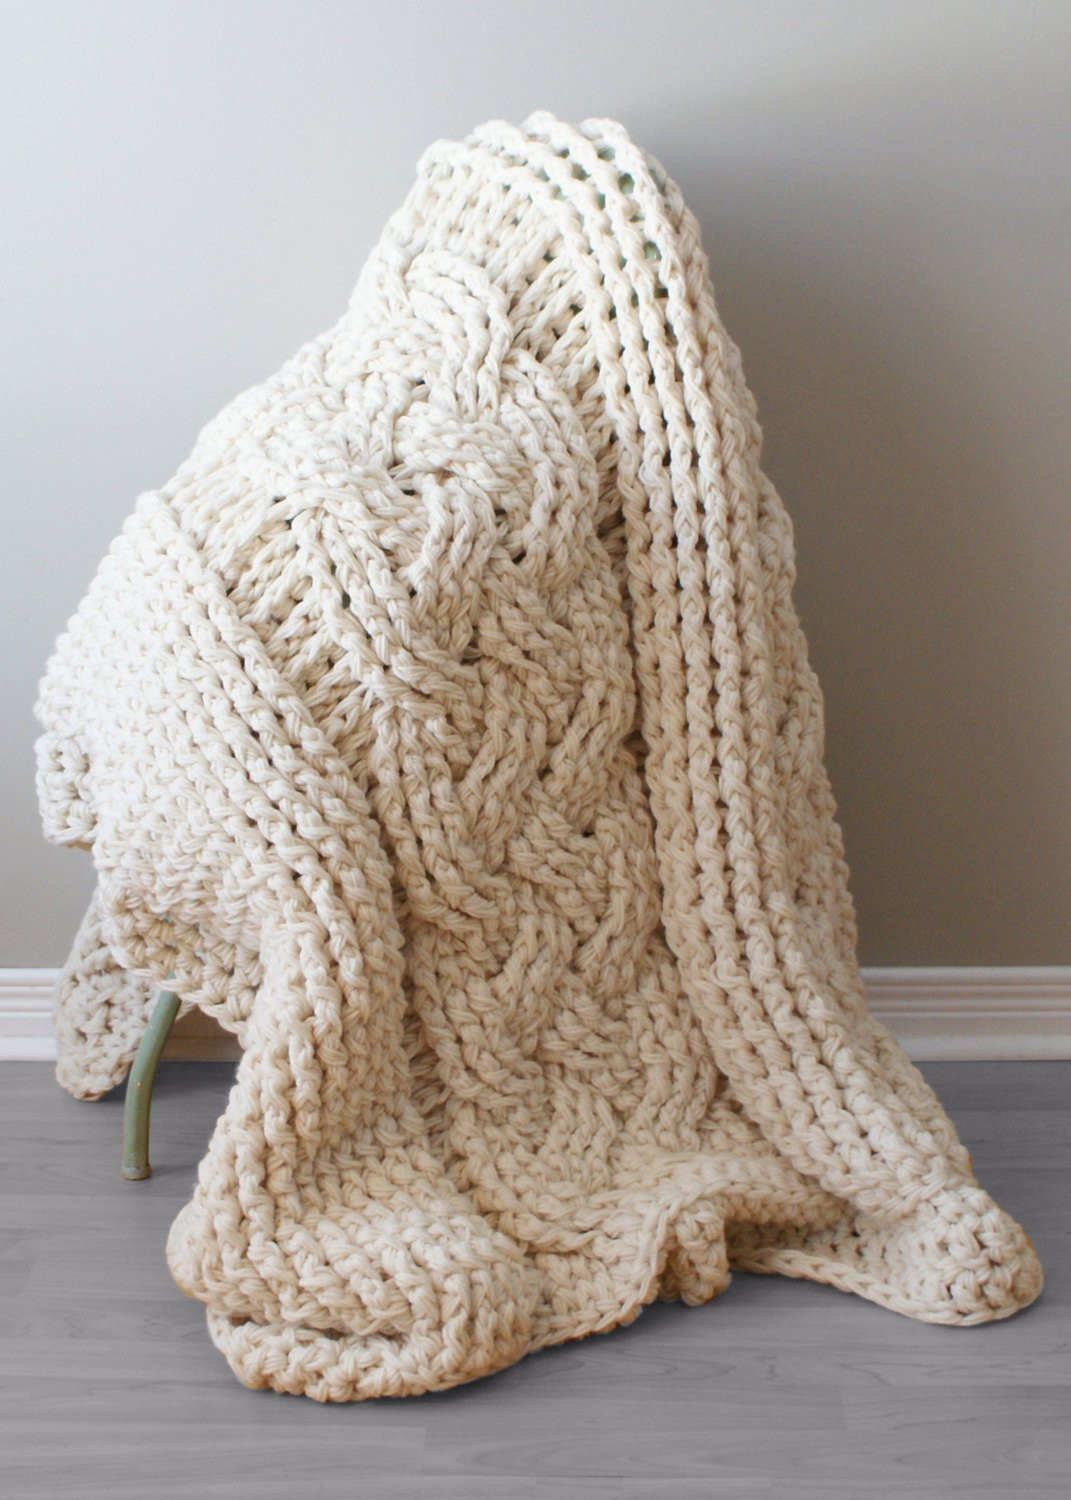 Afghan Blanket Crochet Pattern Elegant Diy Crochet Pattern Throw Blanket Rug Super Chunky Double Of Incredible 43 Pictures Afghan Blanket Crochet Pattern